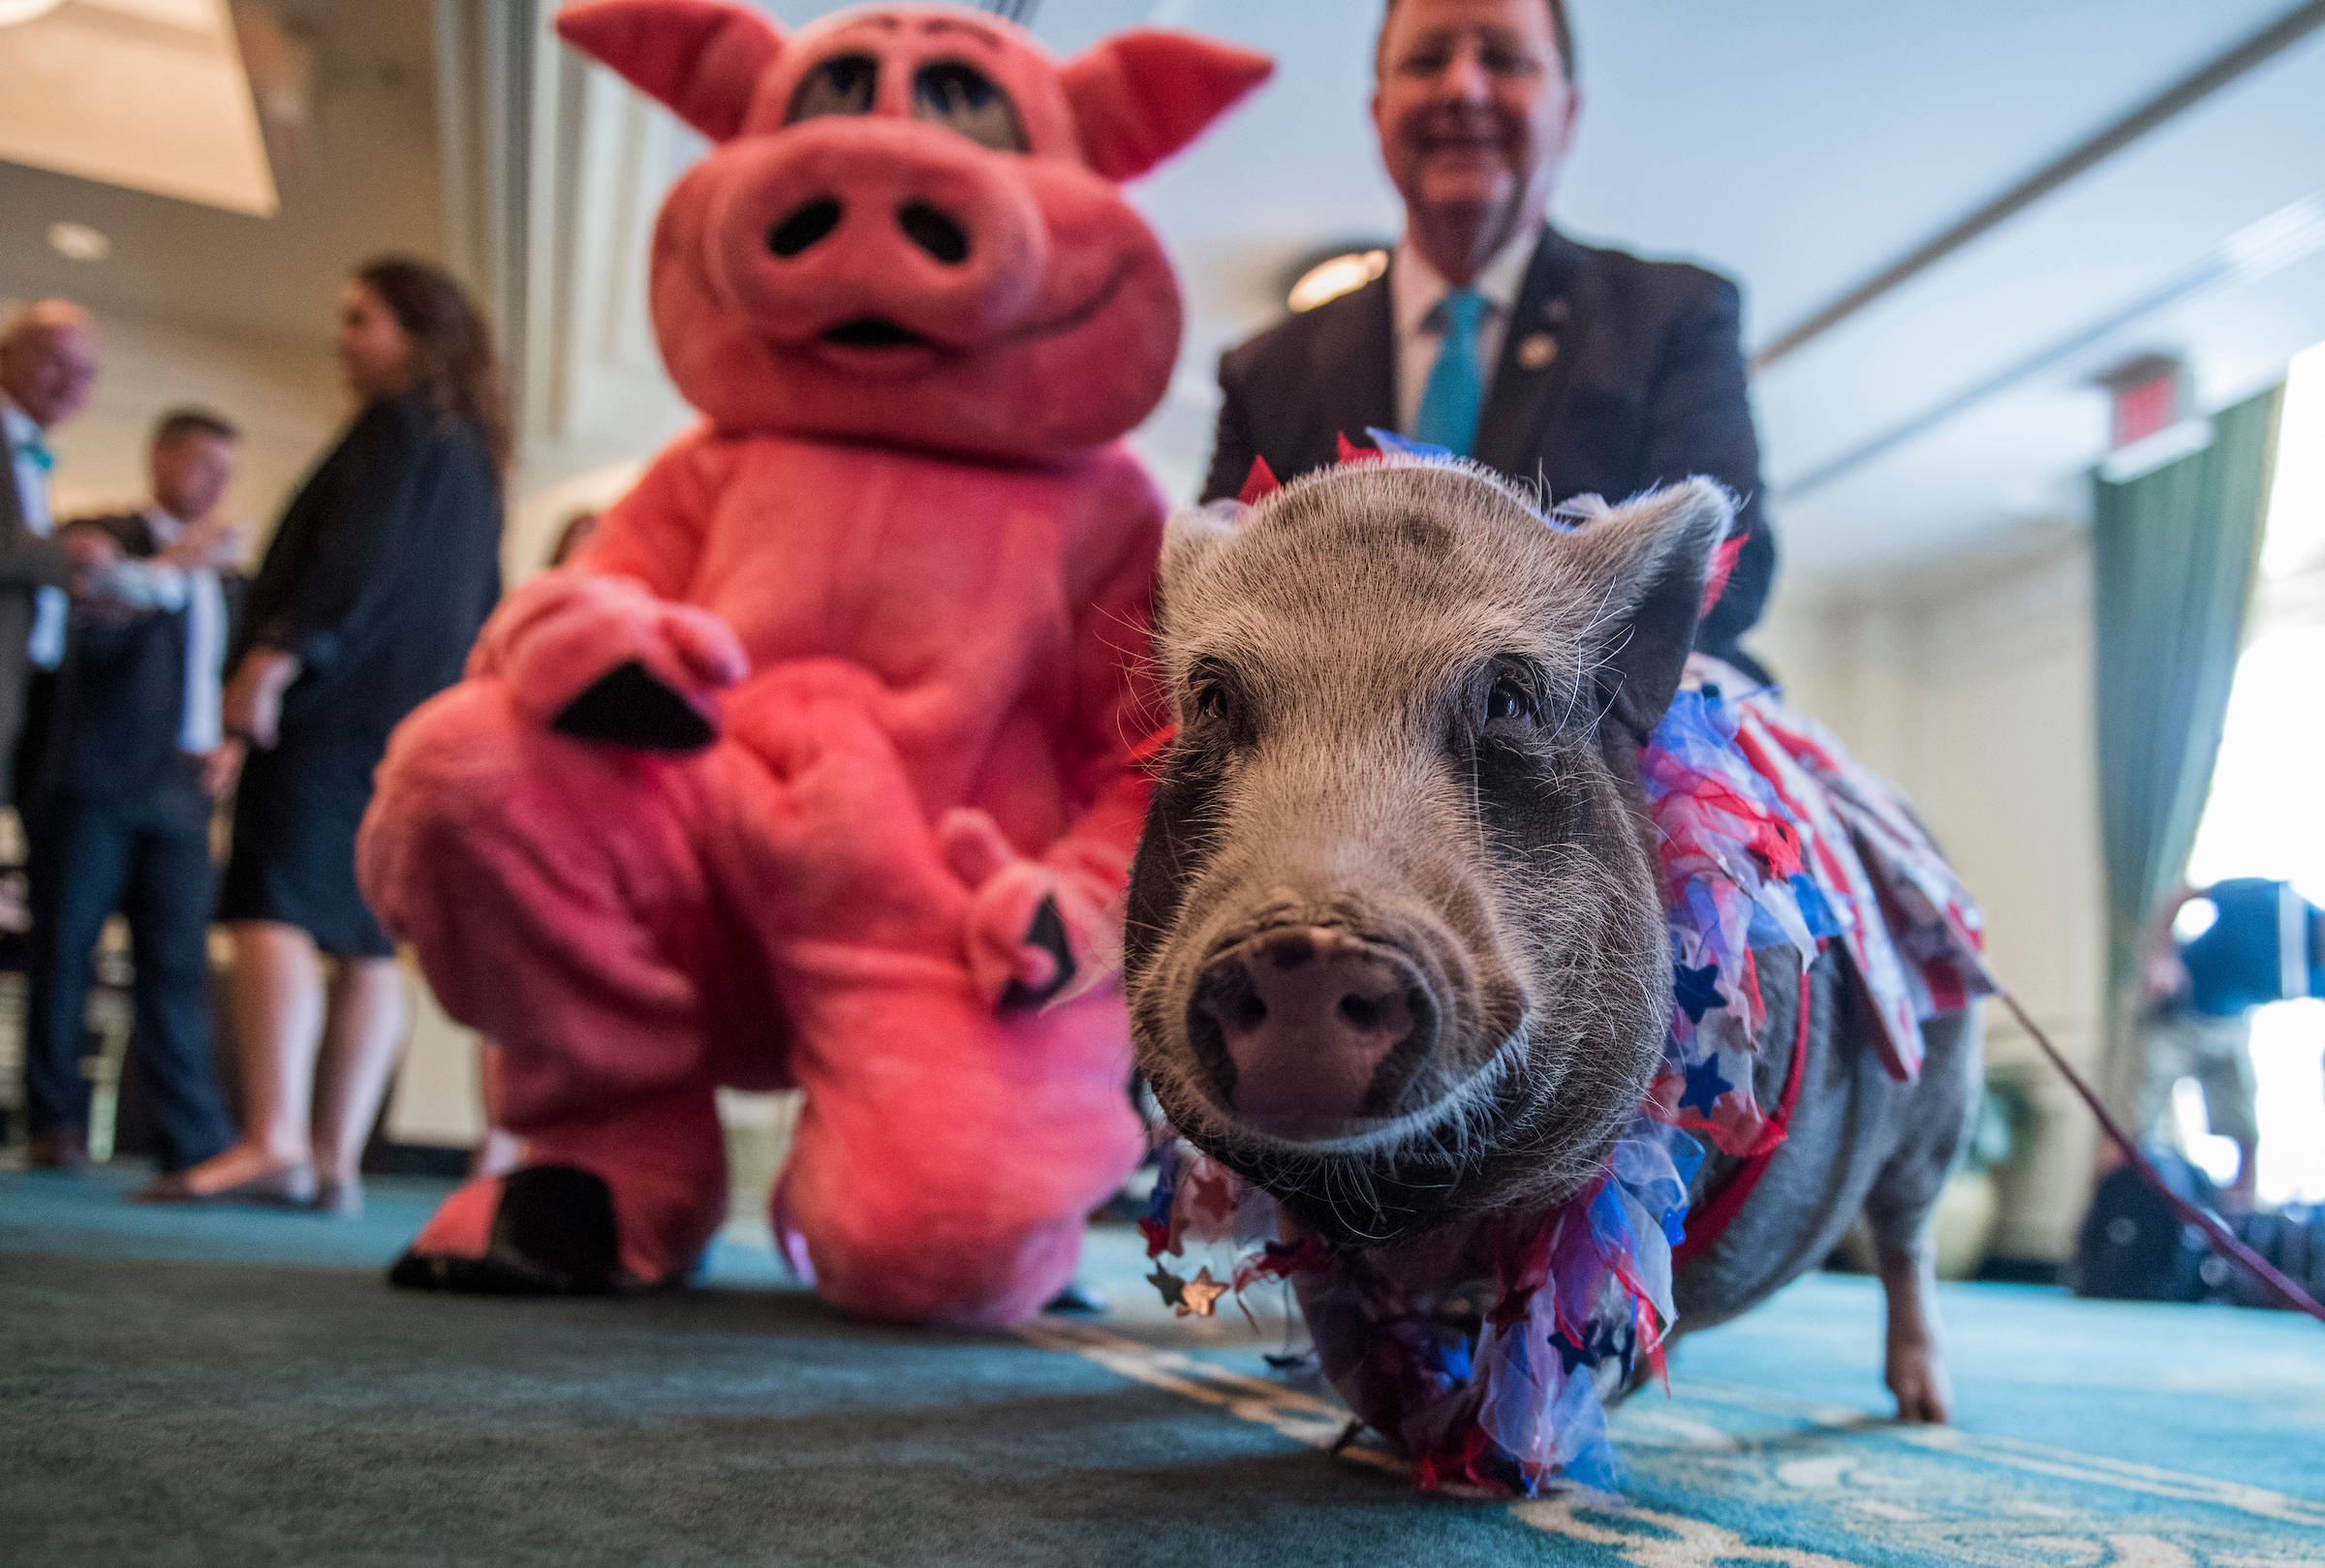 UNITED STATES - JULY 19: Rep. Bill Flores, R-Texas, poses with Faye, a pot belly pig, after a news conference held by Citizens Against Government Waste at the Phoenix Park Hotel to release the 2017 Congressional Pig Book which identifies pork-barrel spending in Congress on July 19, 2017. (Photo By Tom Williams/CQ Roll Call)